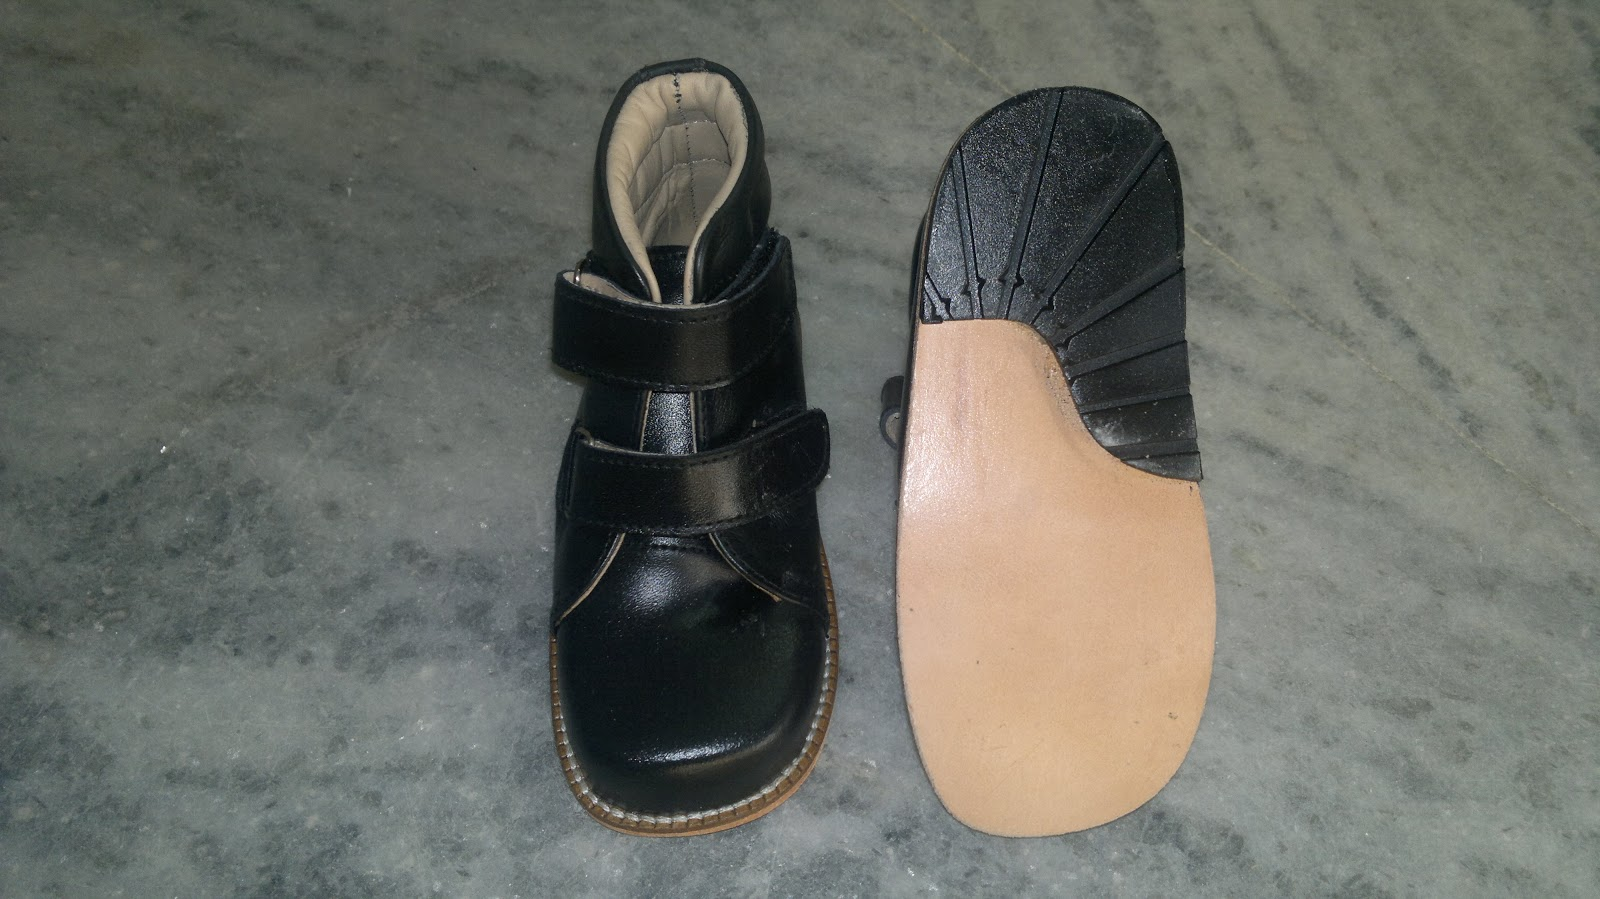 Shoes For Clubfoot Kids